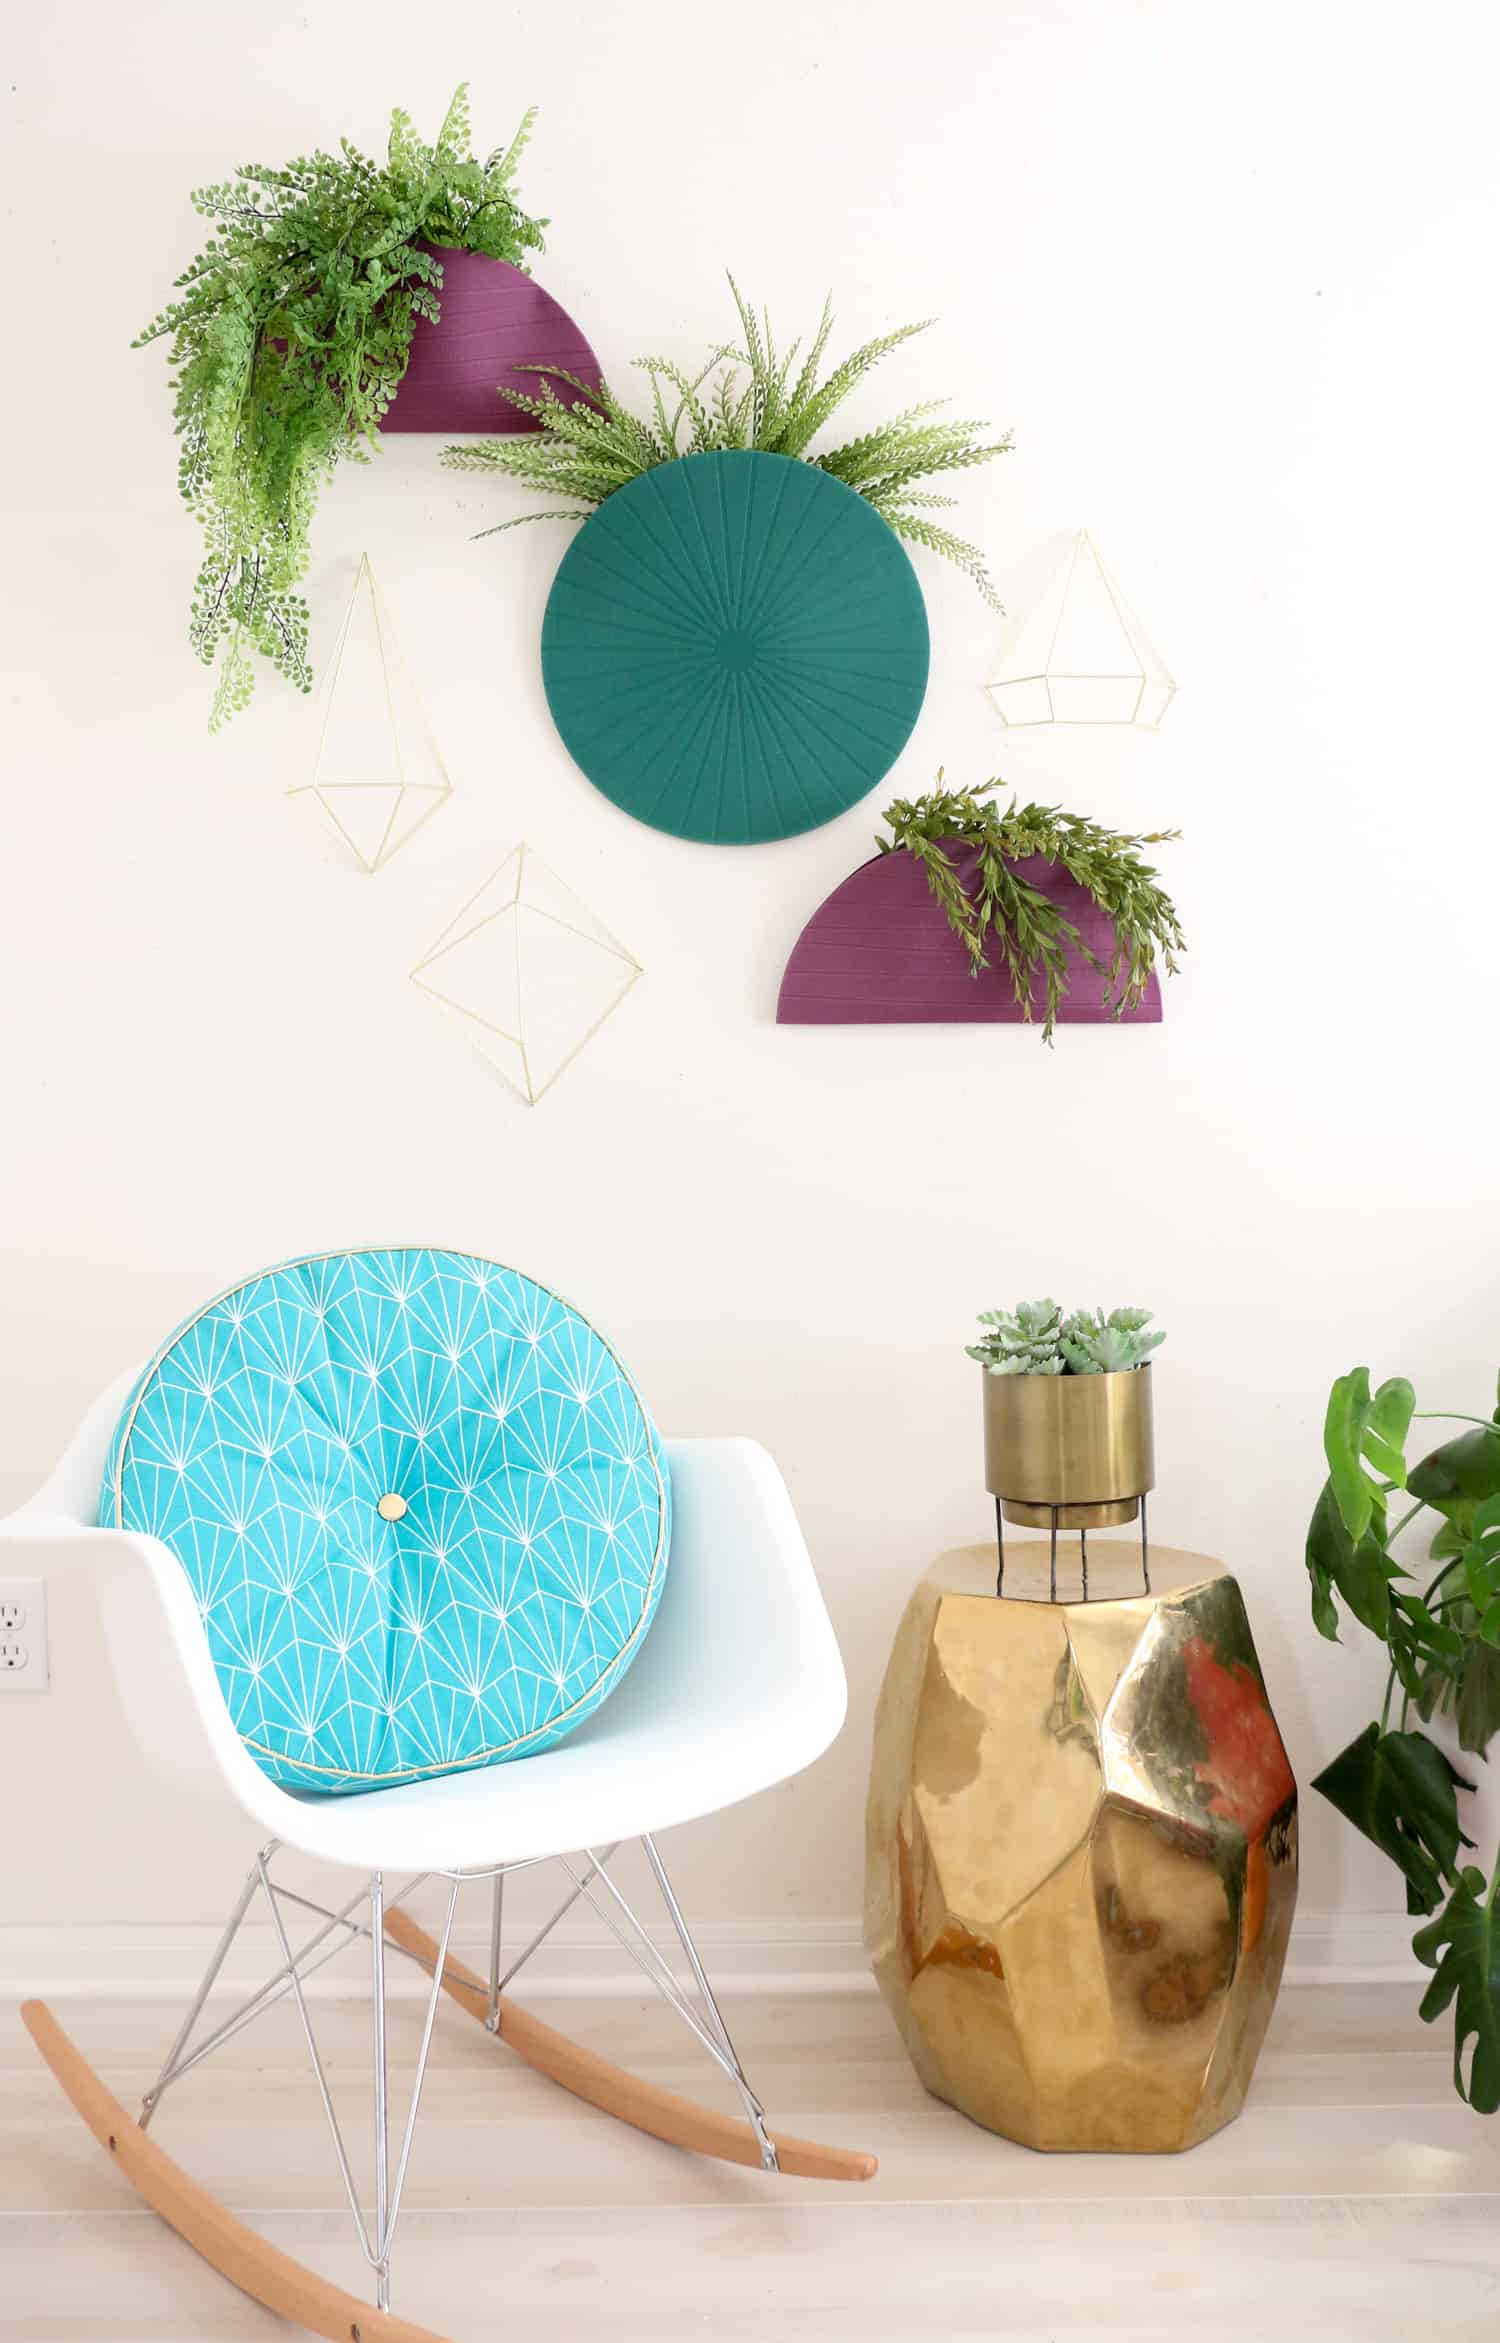 How-to-Turn-Placemats-into-Hanging-Planters-6